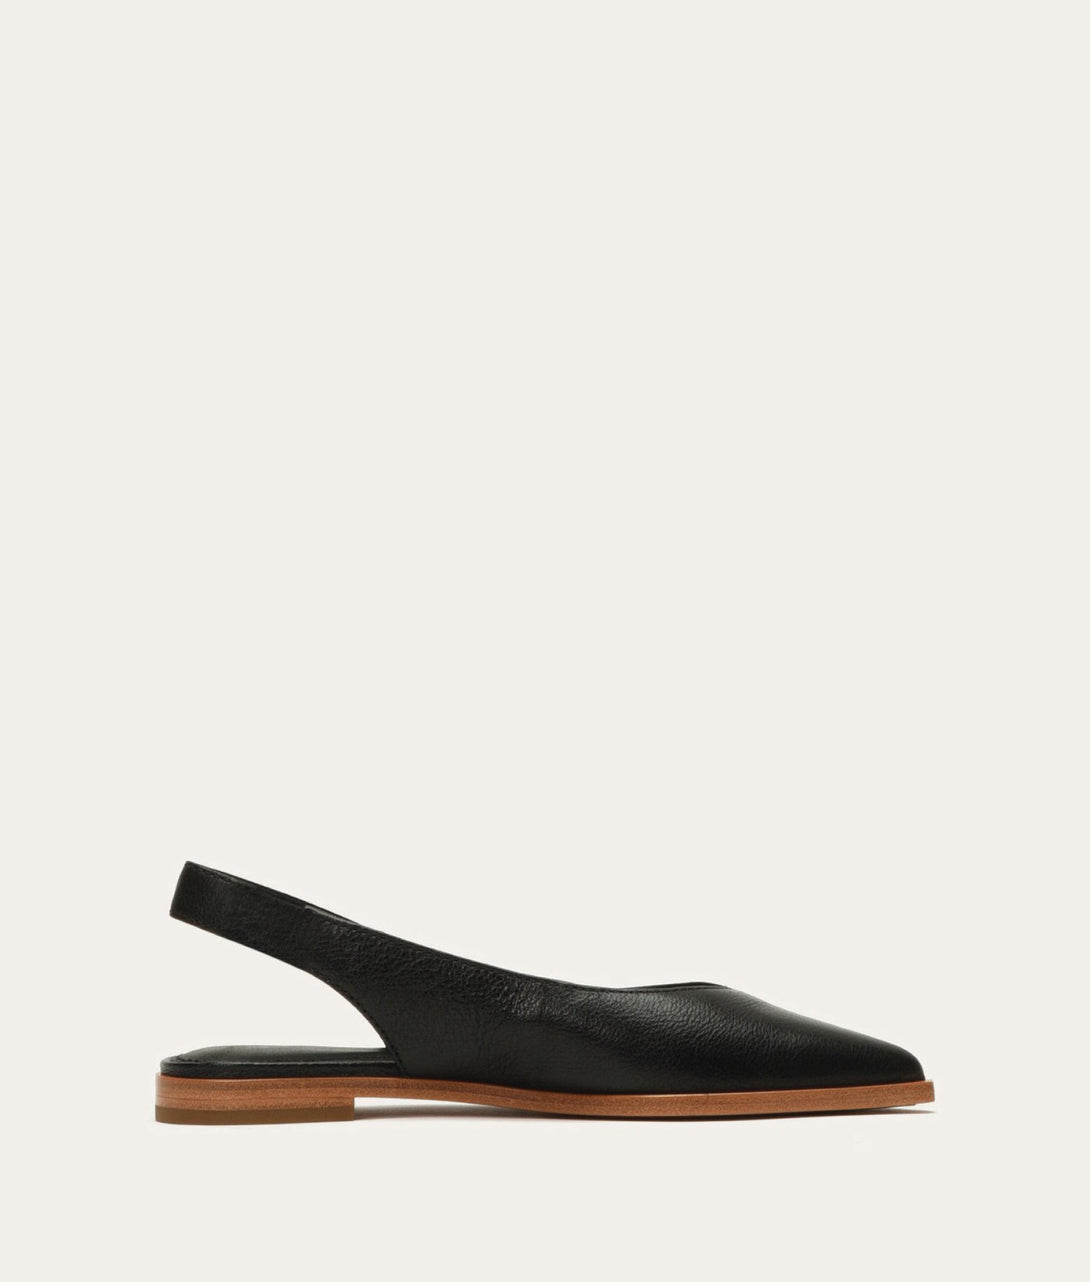 Kenzie Slingback in Black